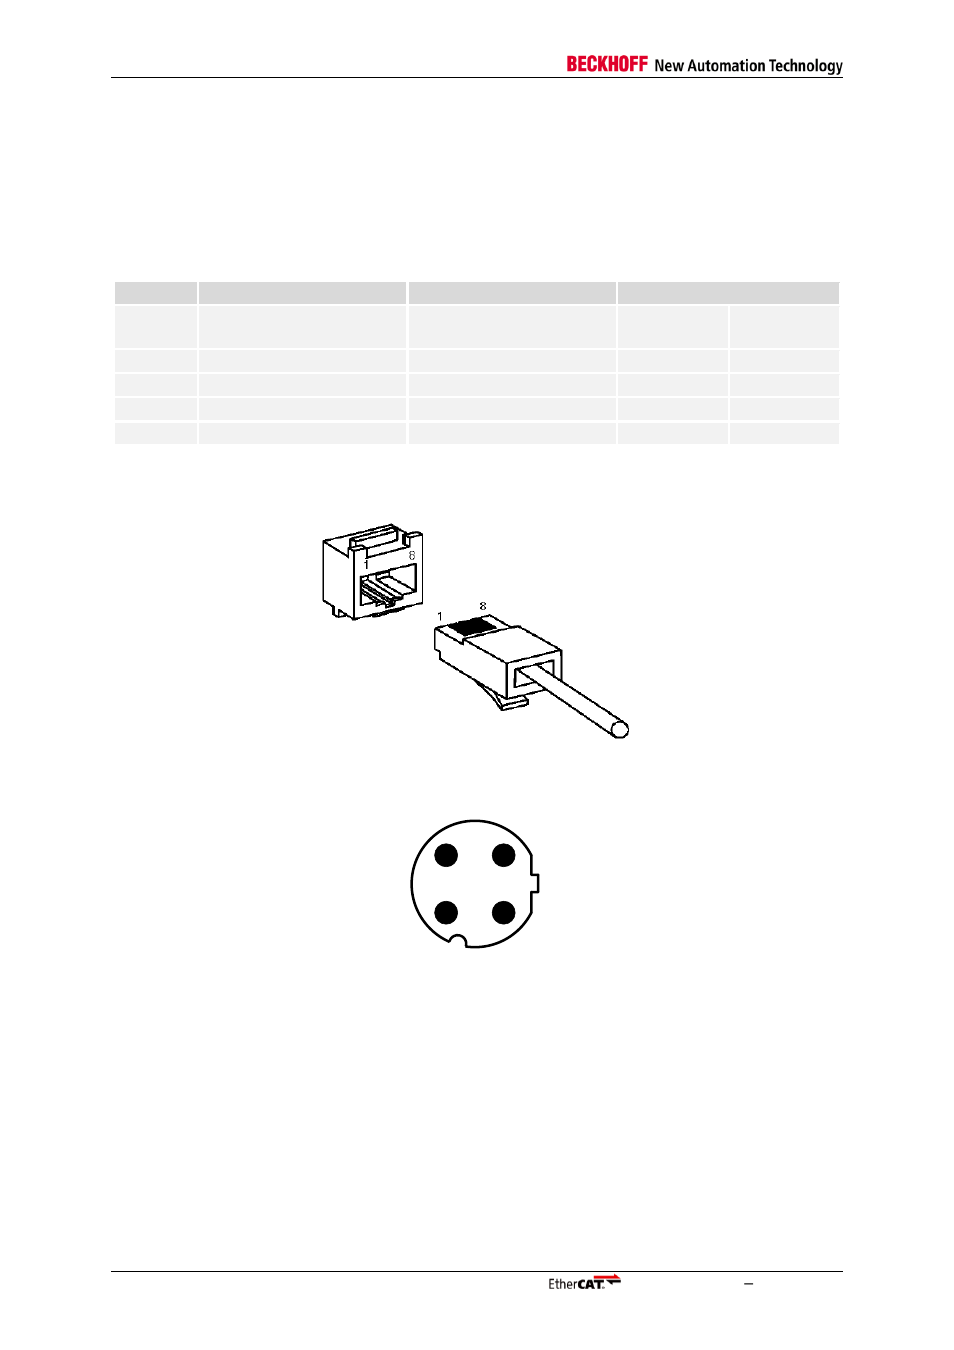 13 Ethernet Connector Rj45 M12 Code Color Plug Wiring Table 19 Signals Used For Fast Beckhoff Ethercat Technology Section I User